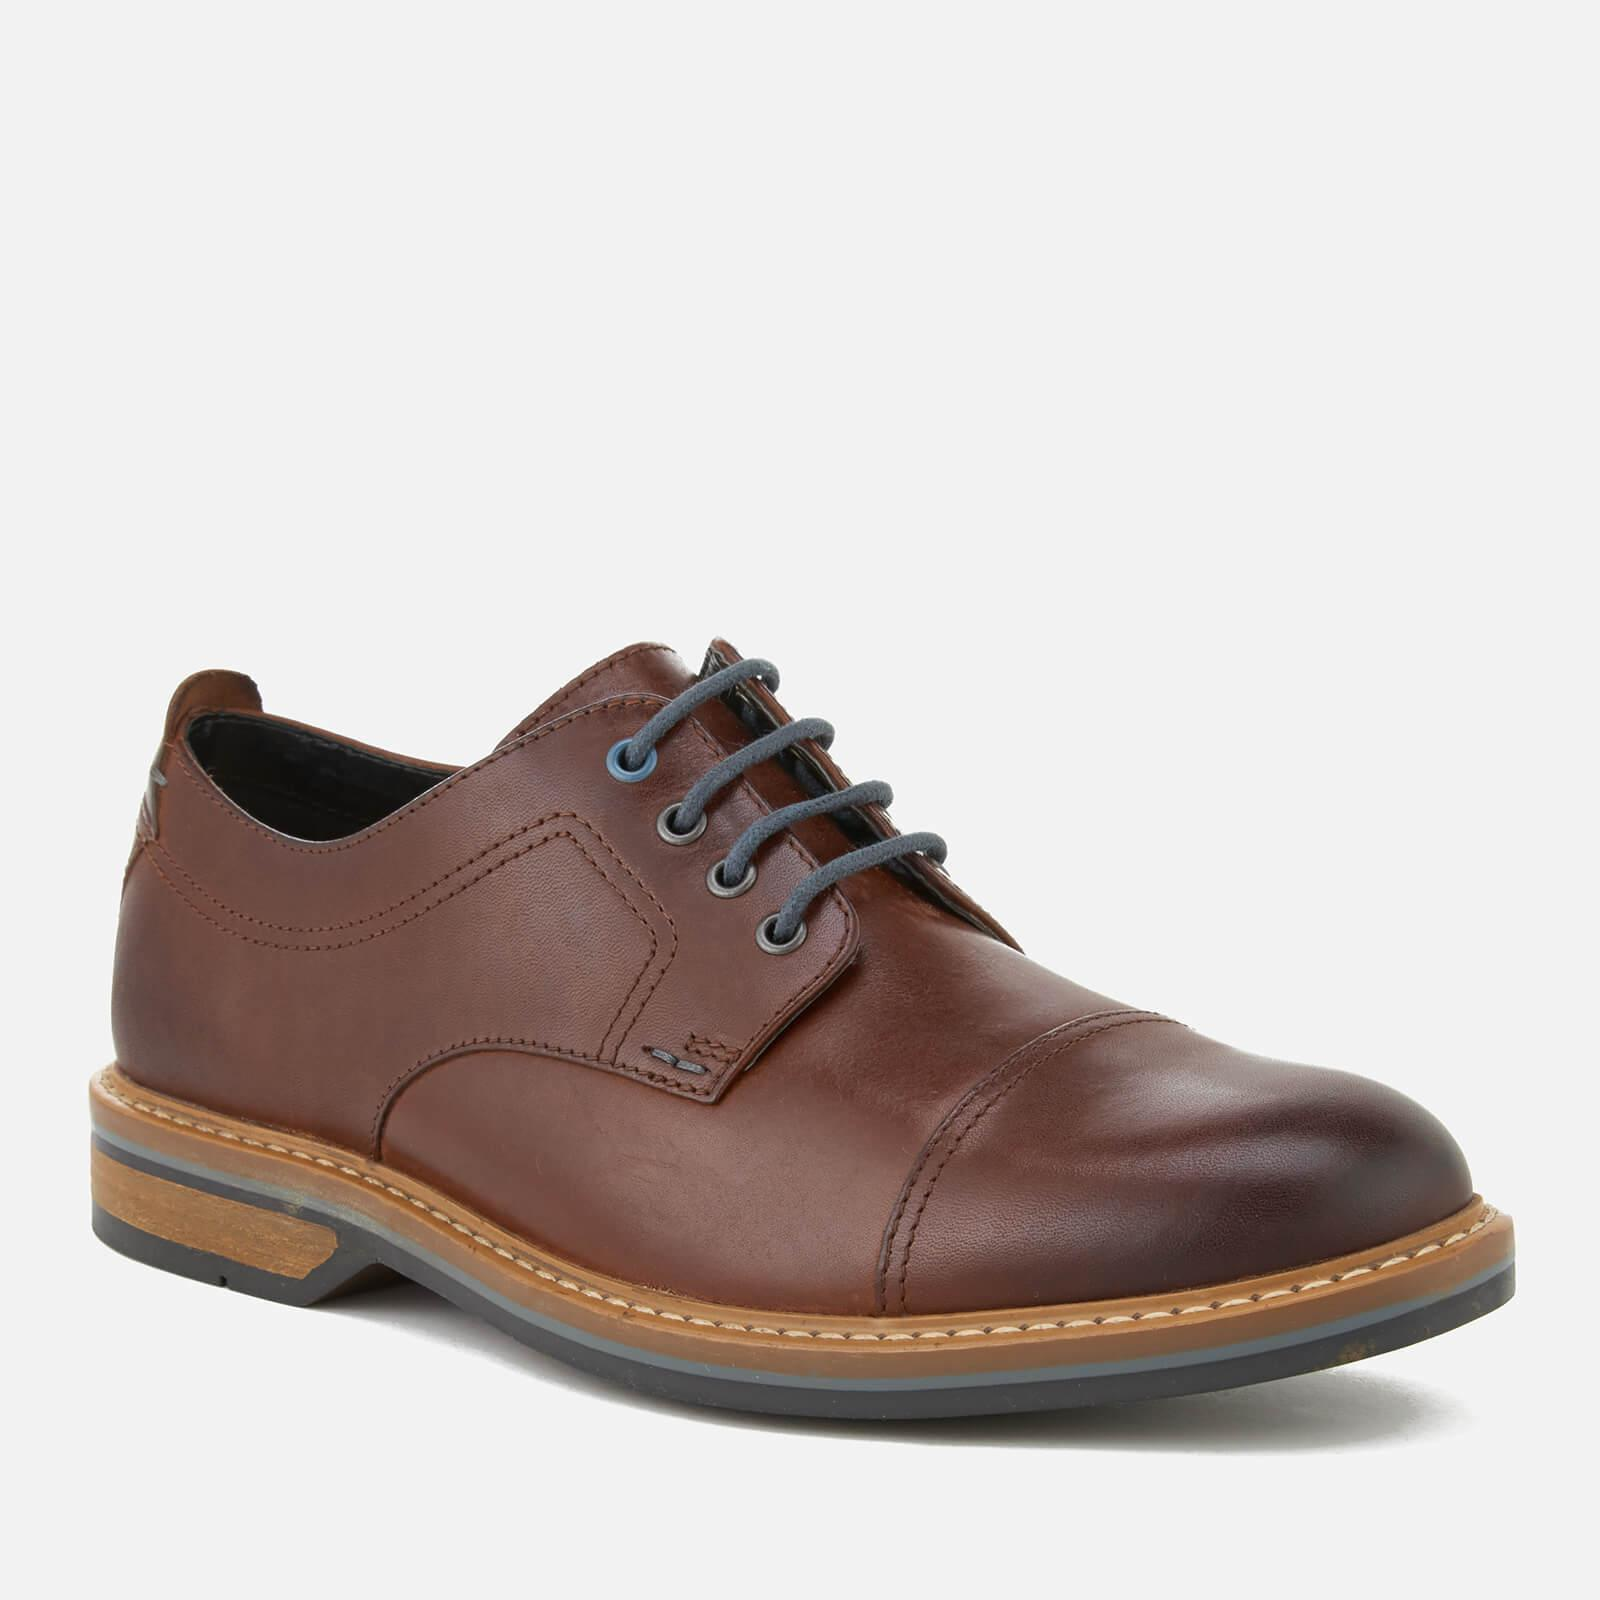 huge selection of 94303 d26a7 clarks-Tan-Pitney-Cap-Leather-Toe-Cap-Derby-Shoes.jpeg